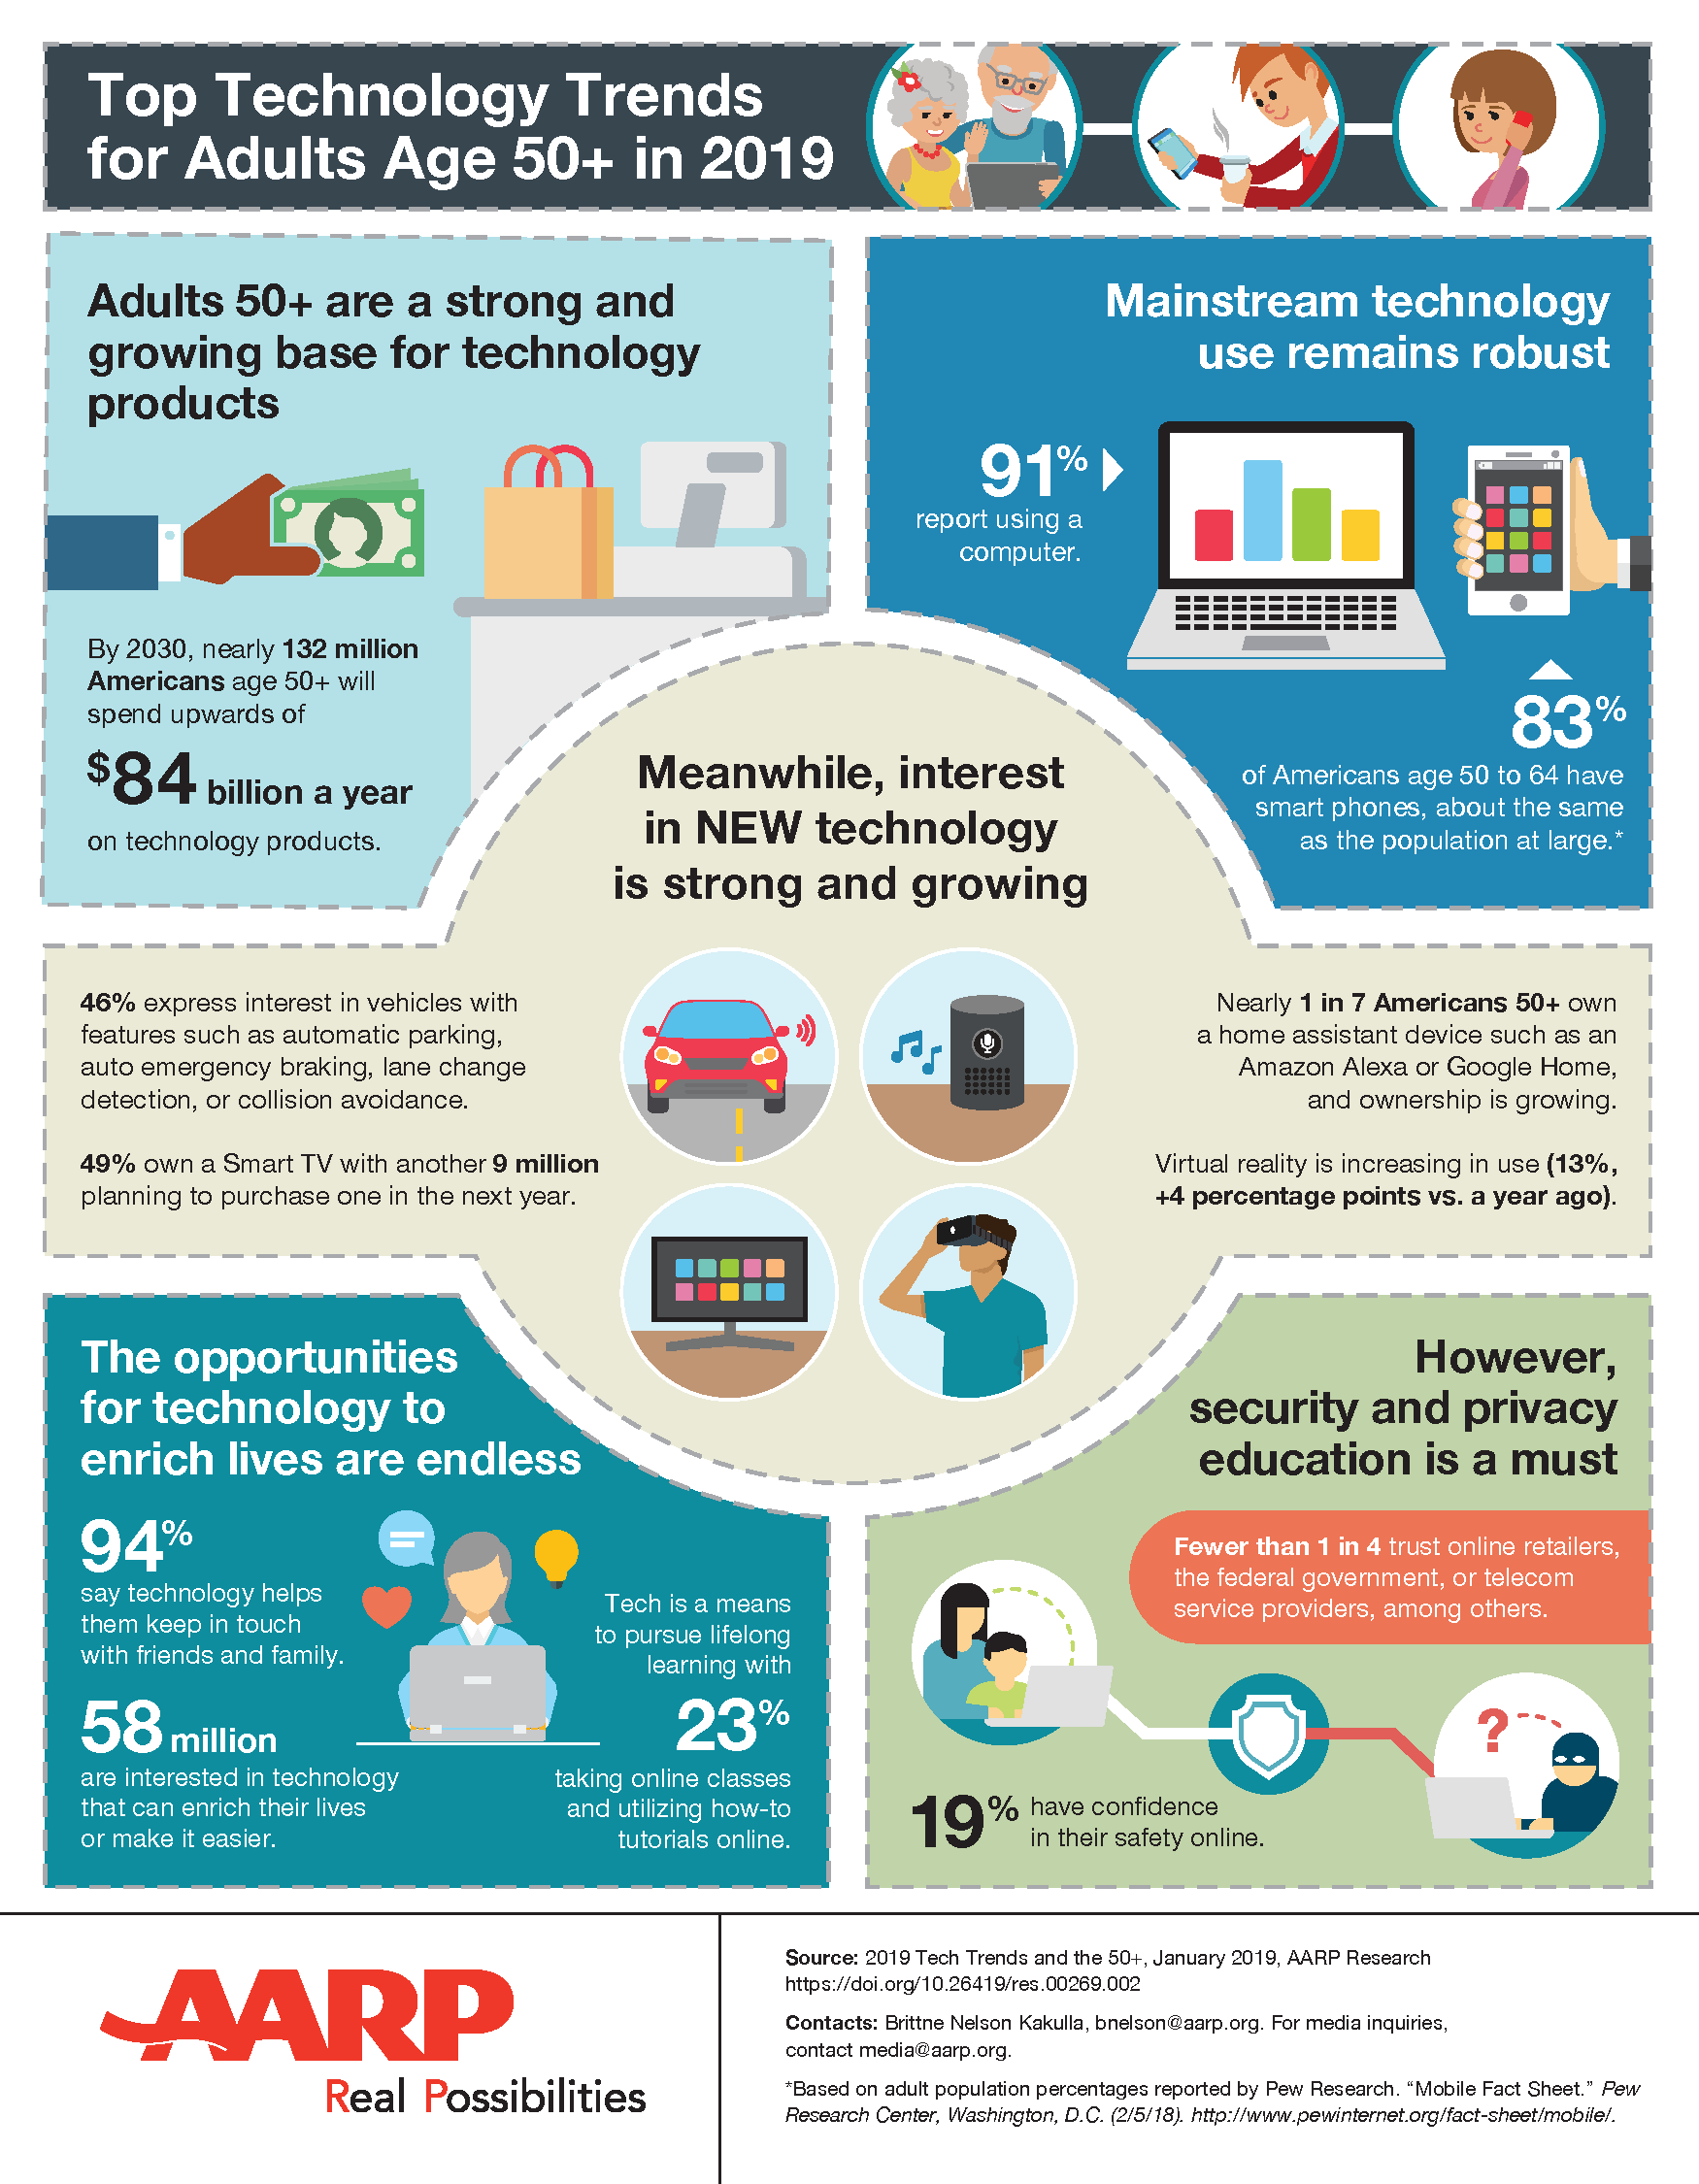 2019-technology-trends-infographic.doi.10.26419-2Fres.00269.002